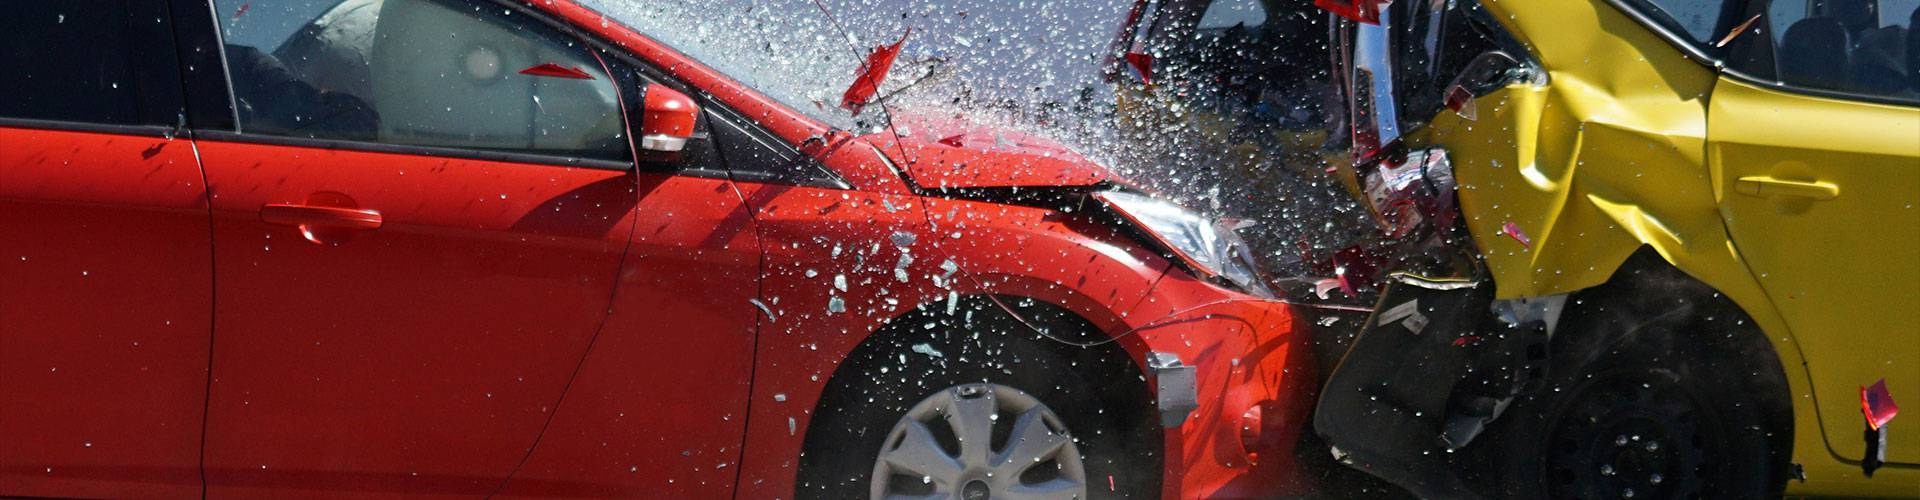 Vehicle Recovery and Storage Management for Insurance Companies